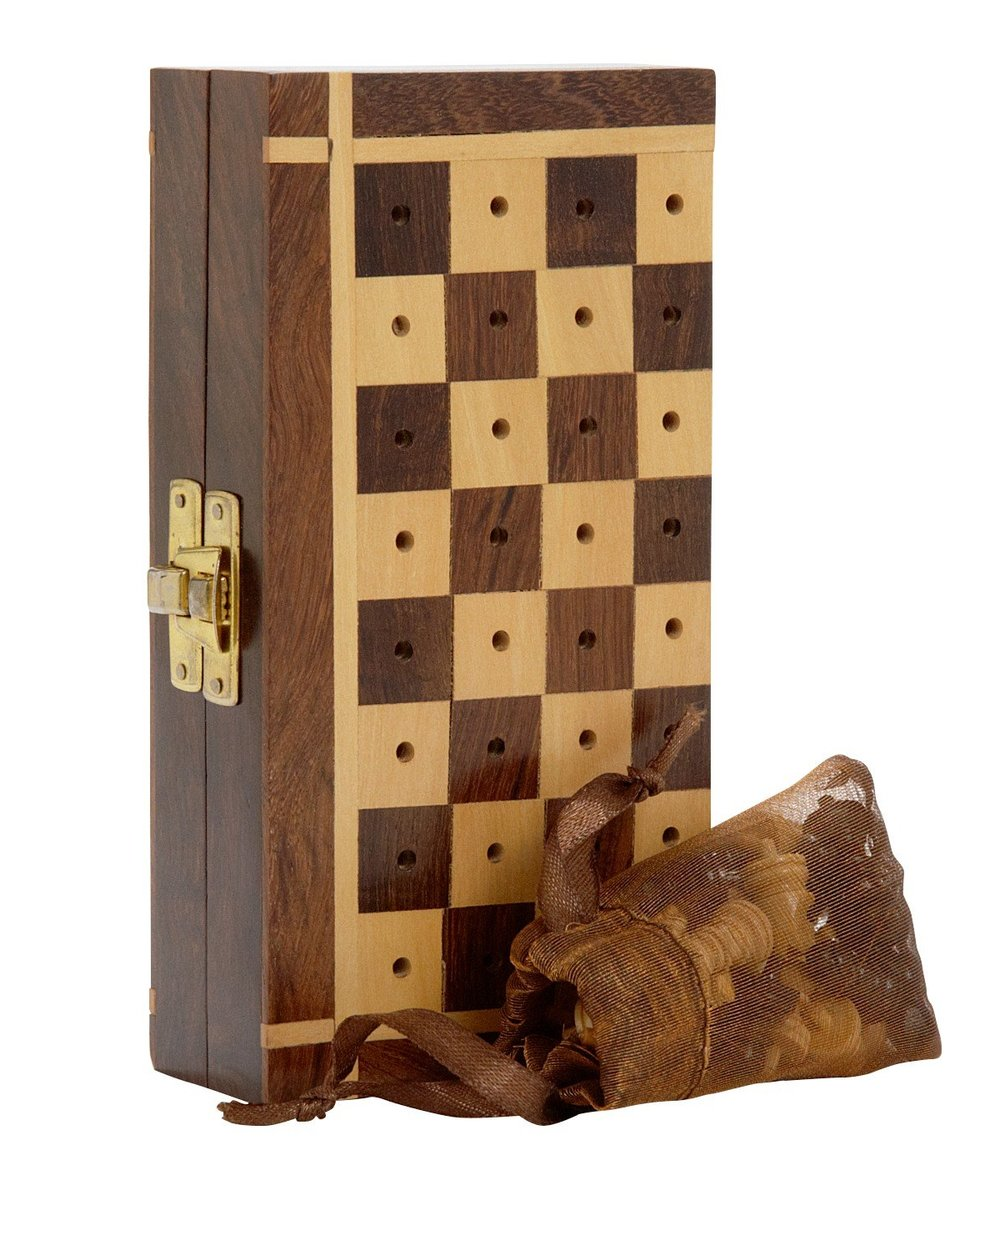 Traveling Chess Set - Ten Thousand Villages |$35 |Use 'STYLEMEFAIR25' for 25% off